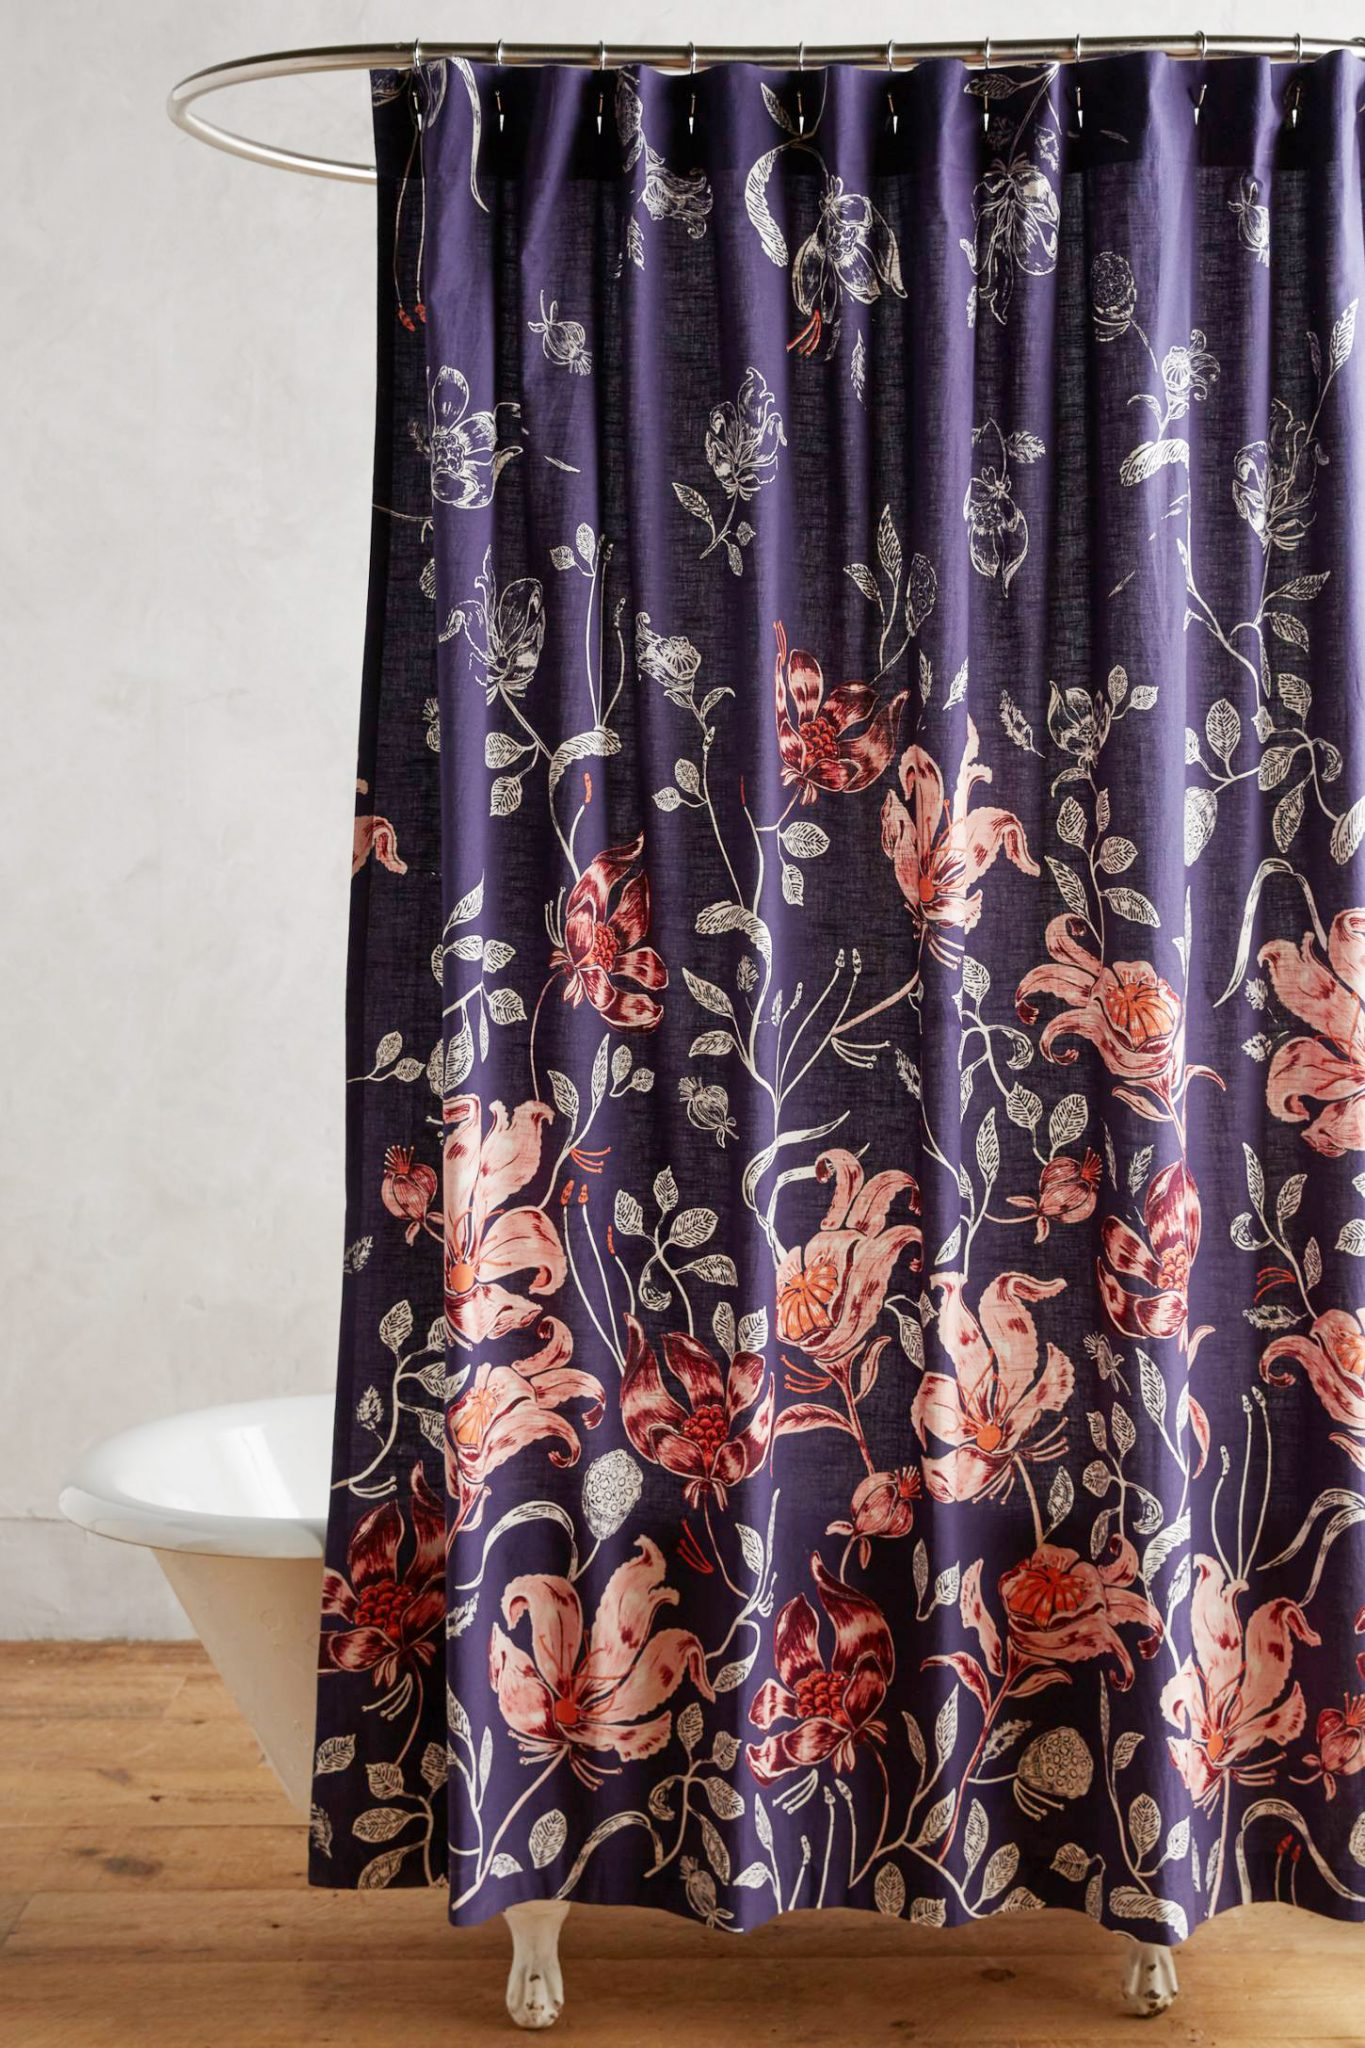 The Prettiest Shower Curtains You\'ve Ever Seen - The Sweetest Occasion